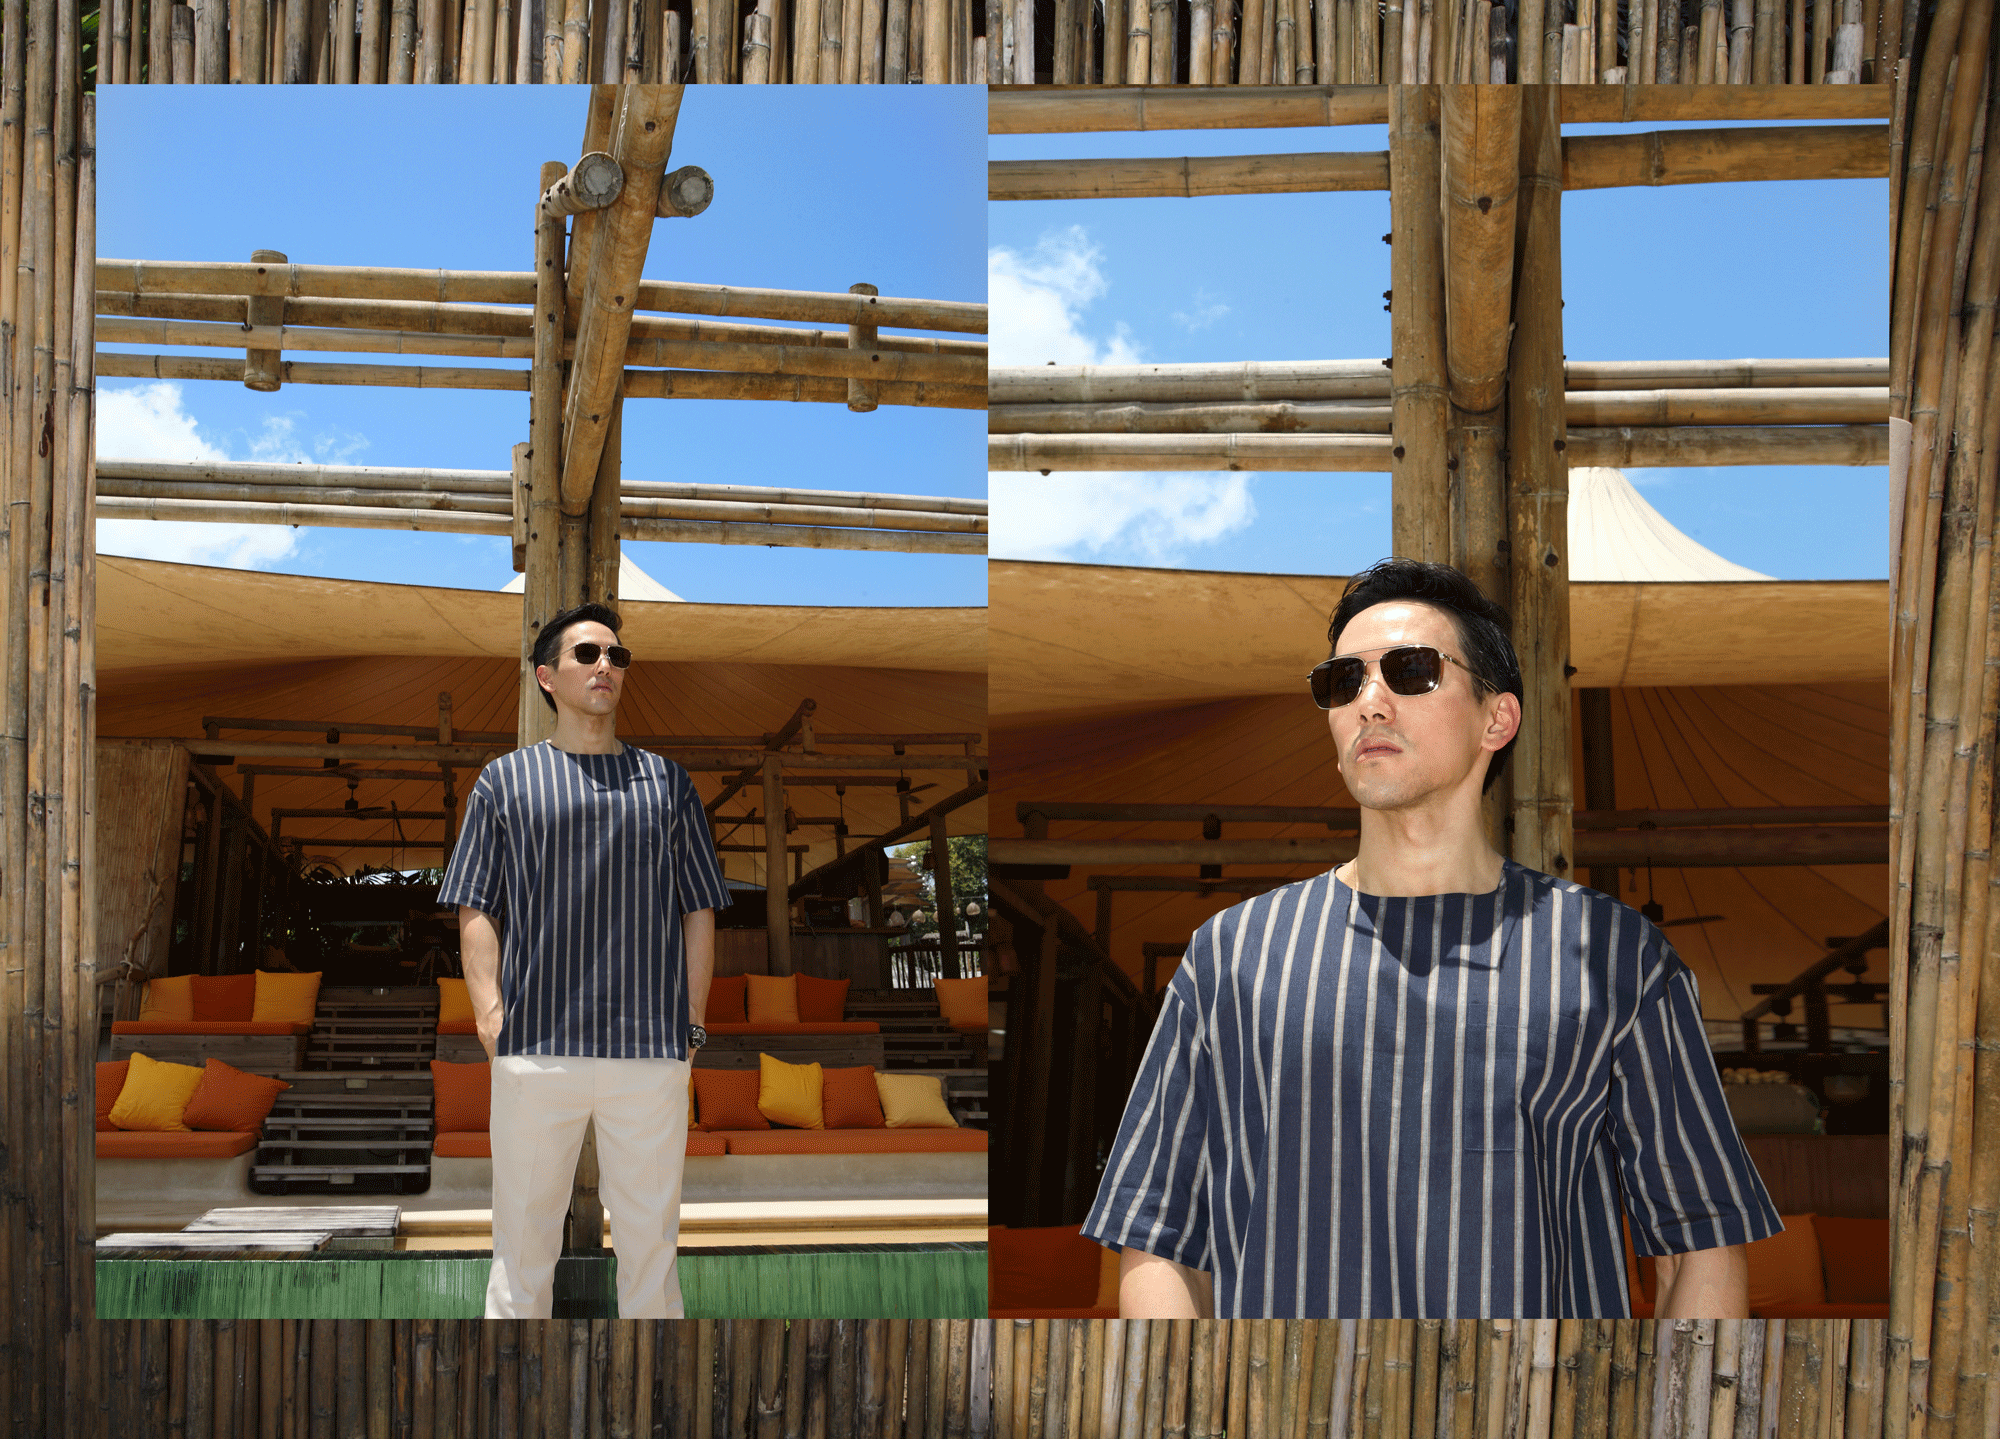 clothes : BLAACK by G2000  sunglasses : TAVAT